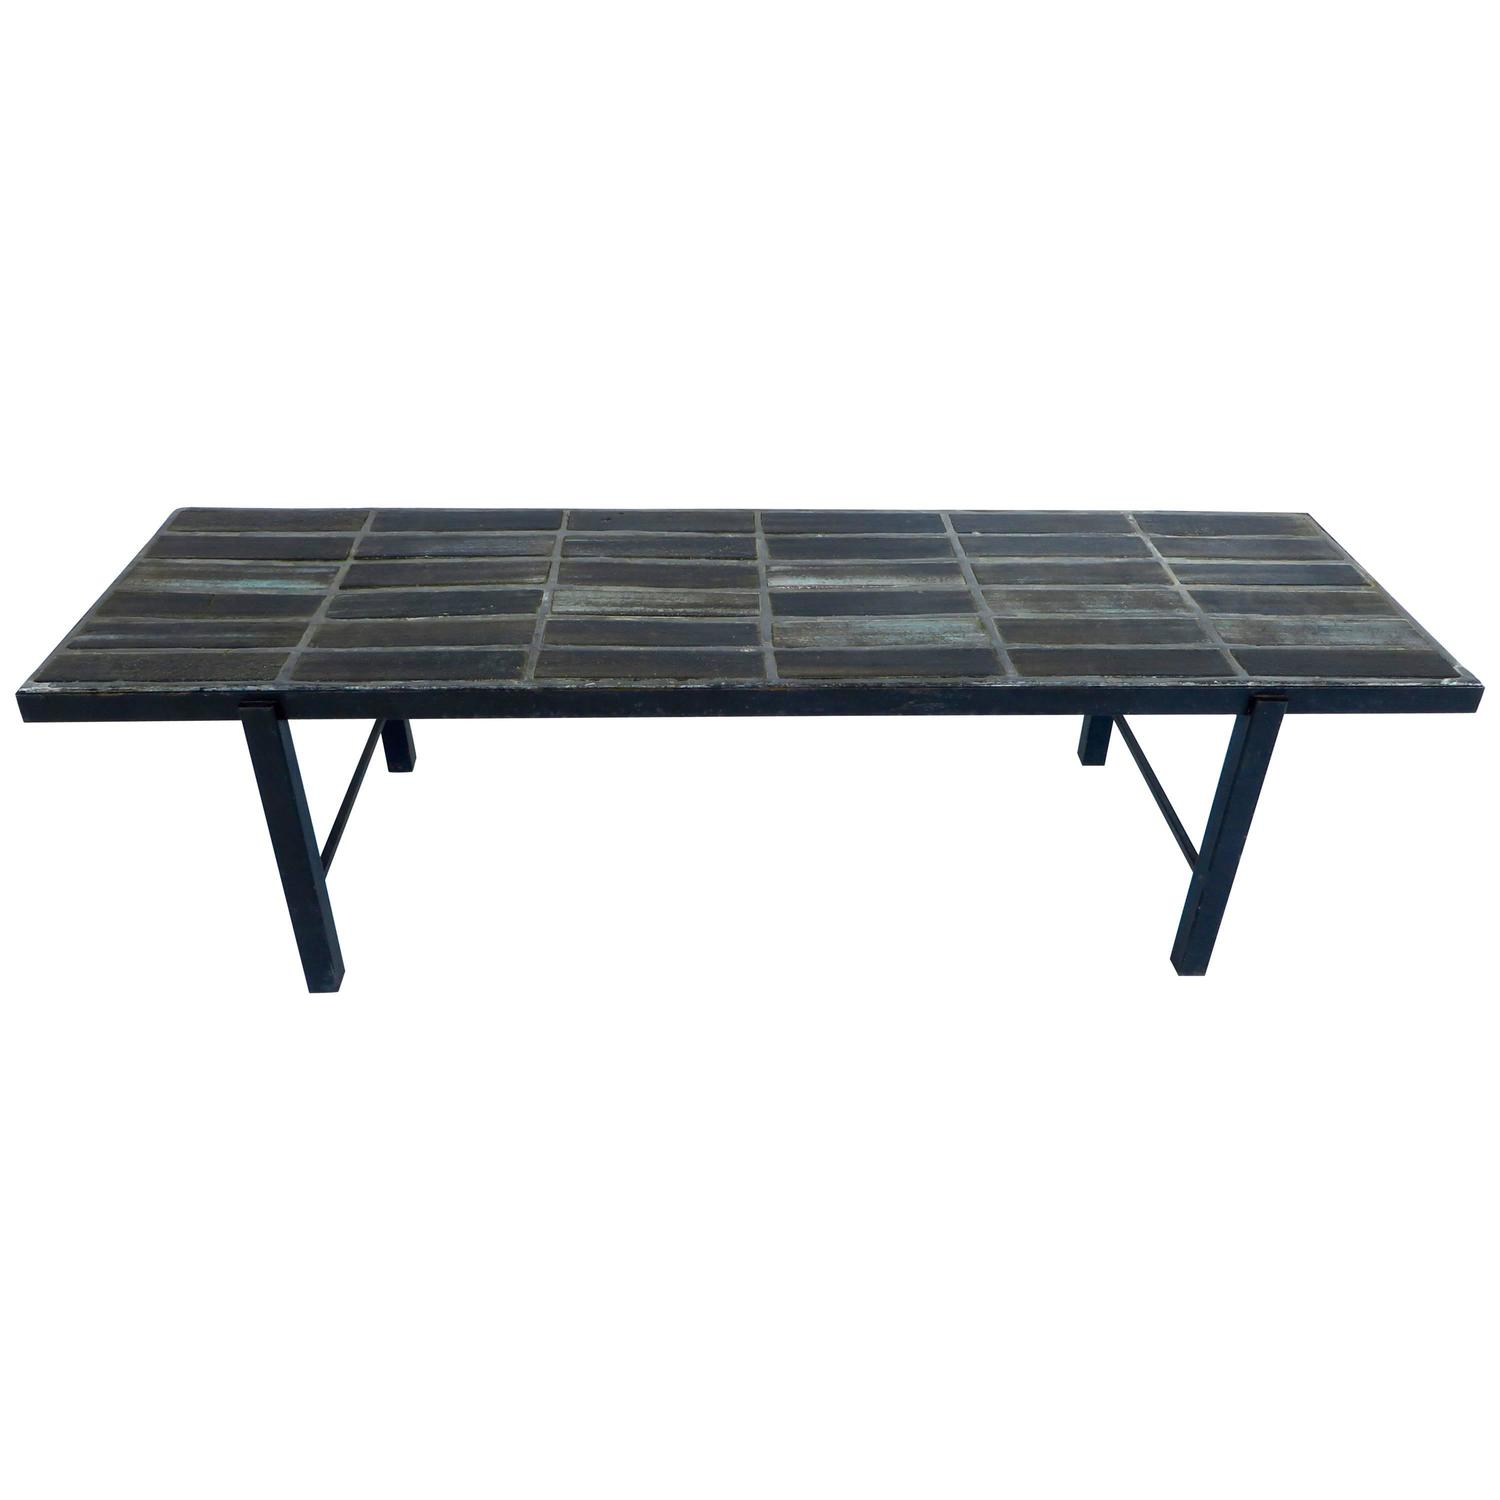 French Ceramic Tile Mosaic Blue Gray Coffee Table Or Bench By Nicole Raude